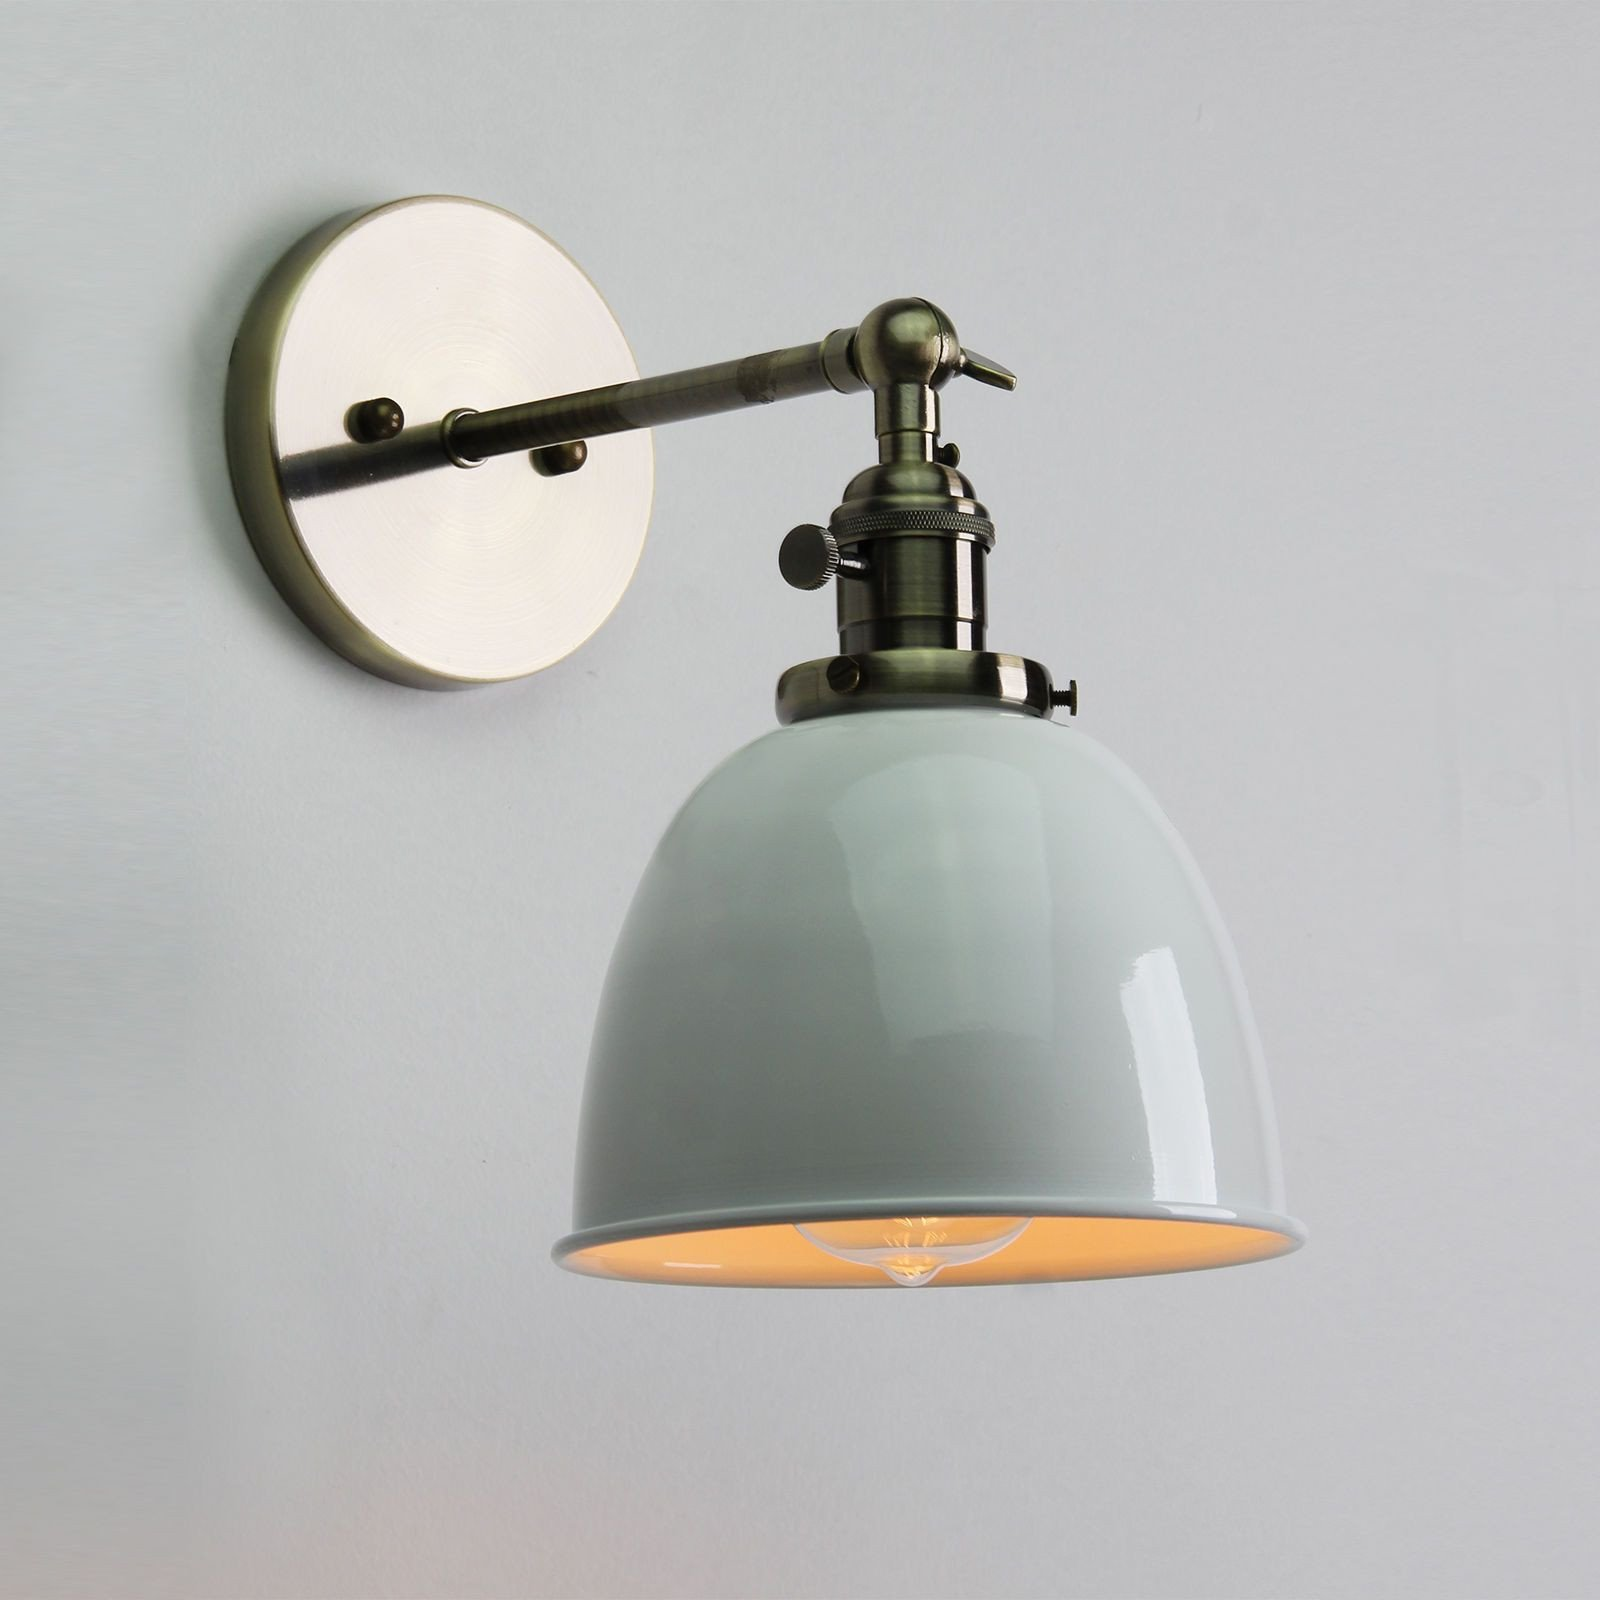 Wall Light for Bedroom Fresh It Has A Clean Industrial Look that is Super Cool the Glass